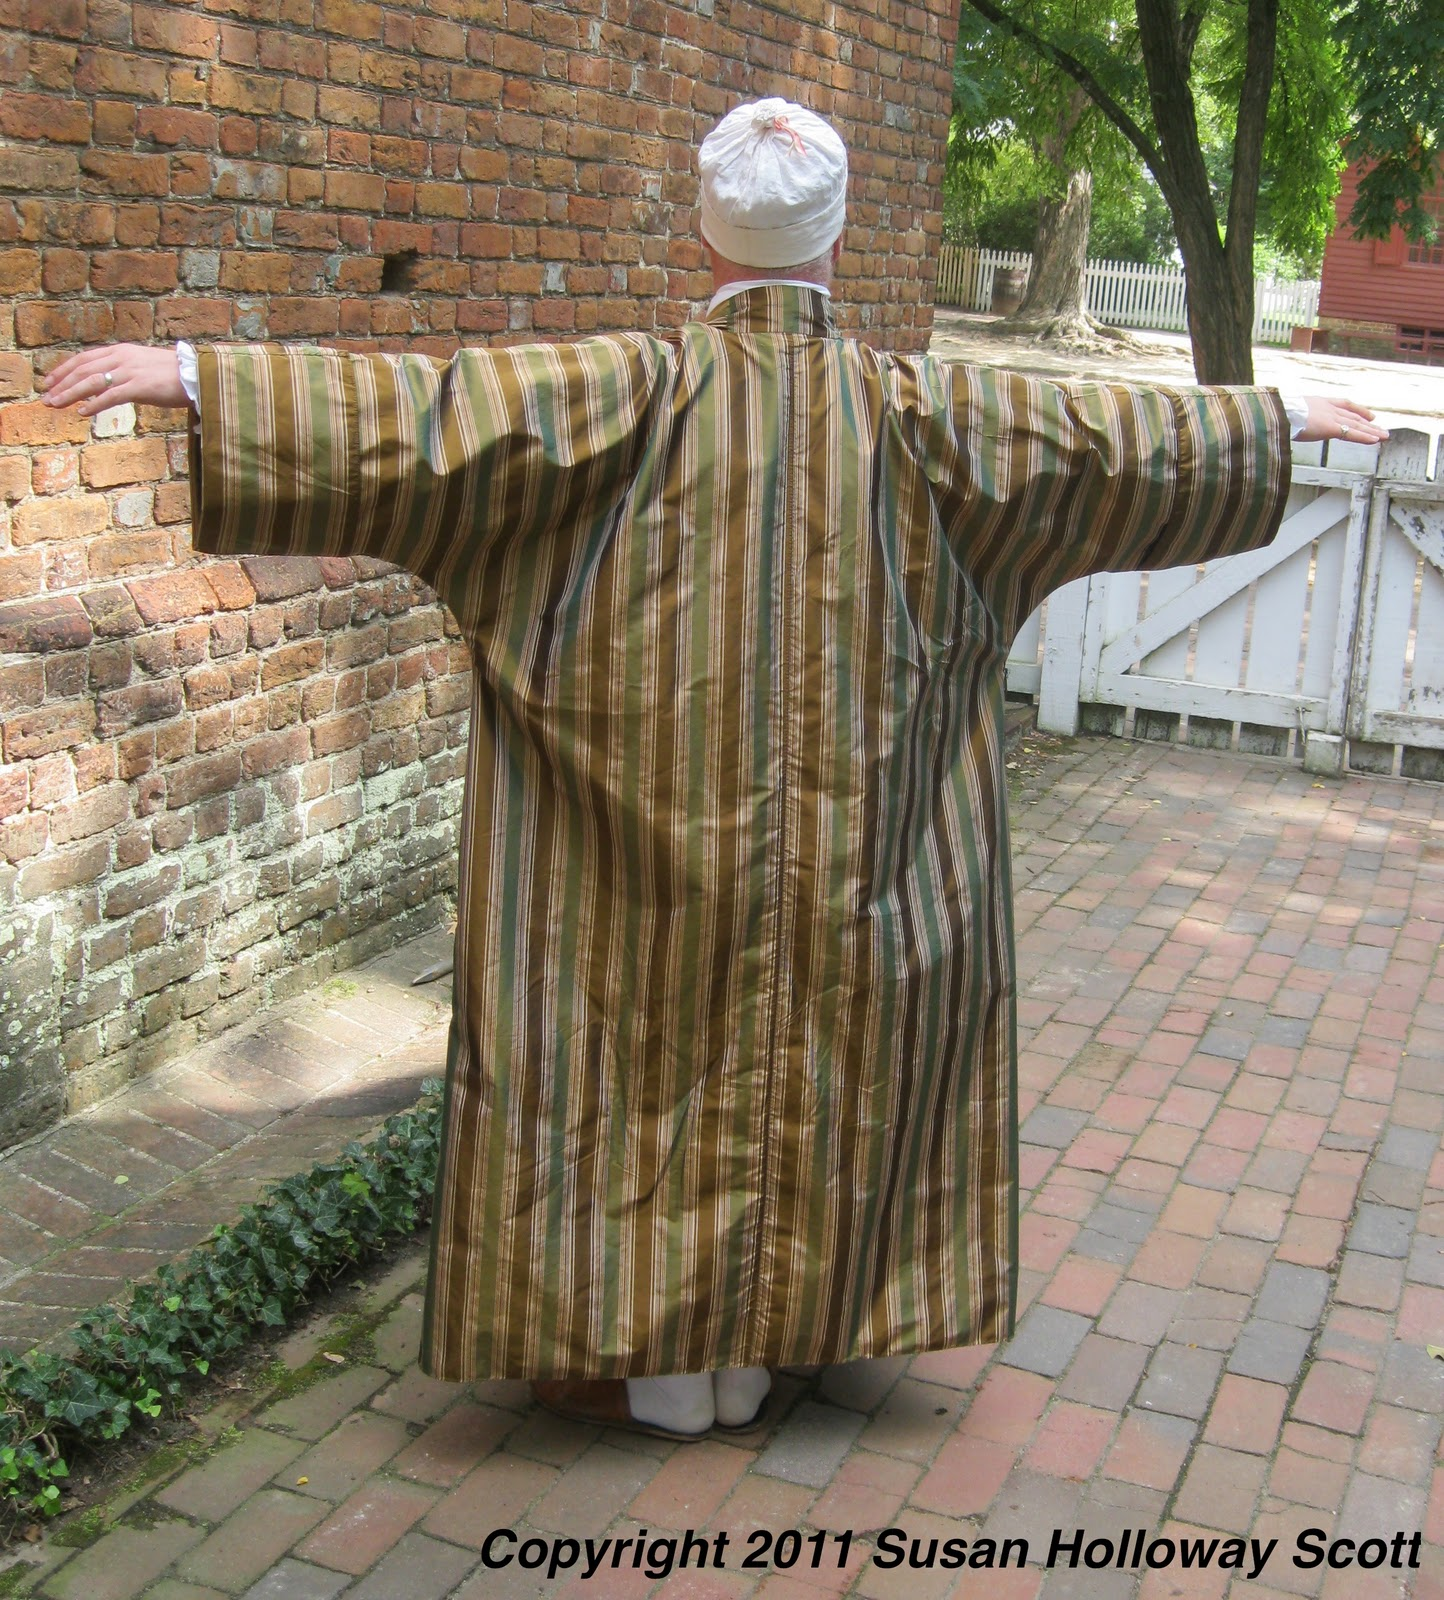 d6522dc71 Mark made the wrapping gown that he is wearing in these pictures based on  18th c examples. The fabric is a silk woven stripe